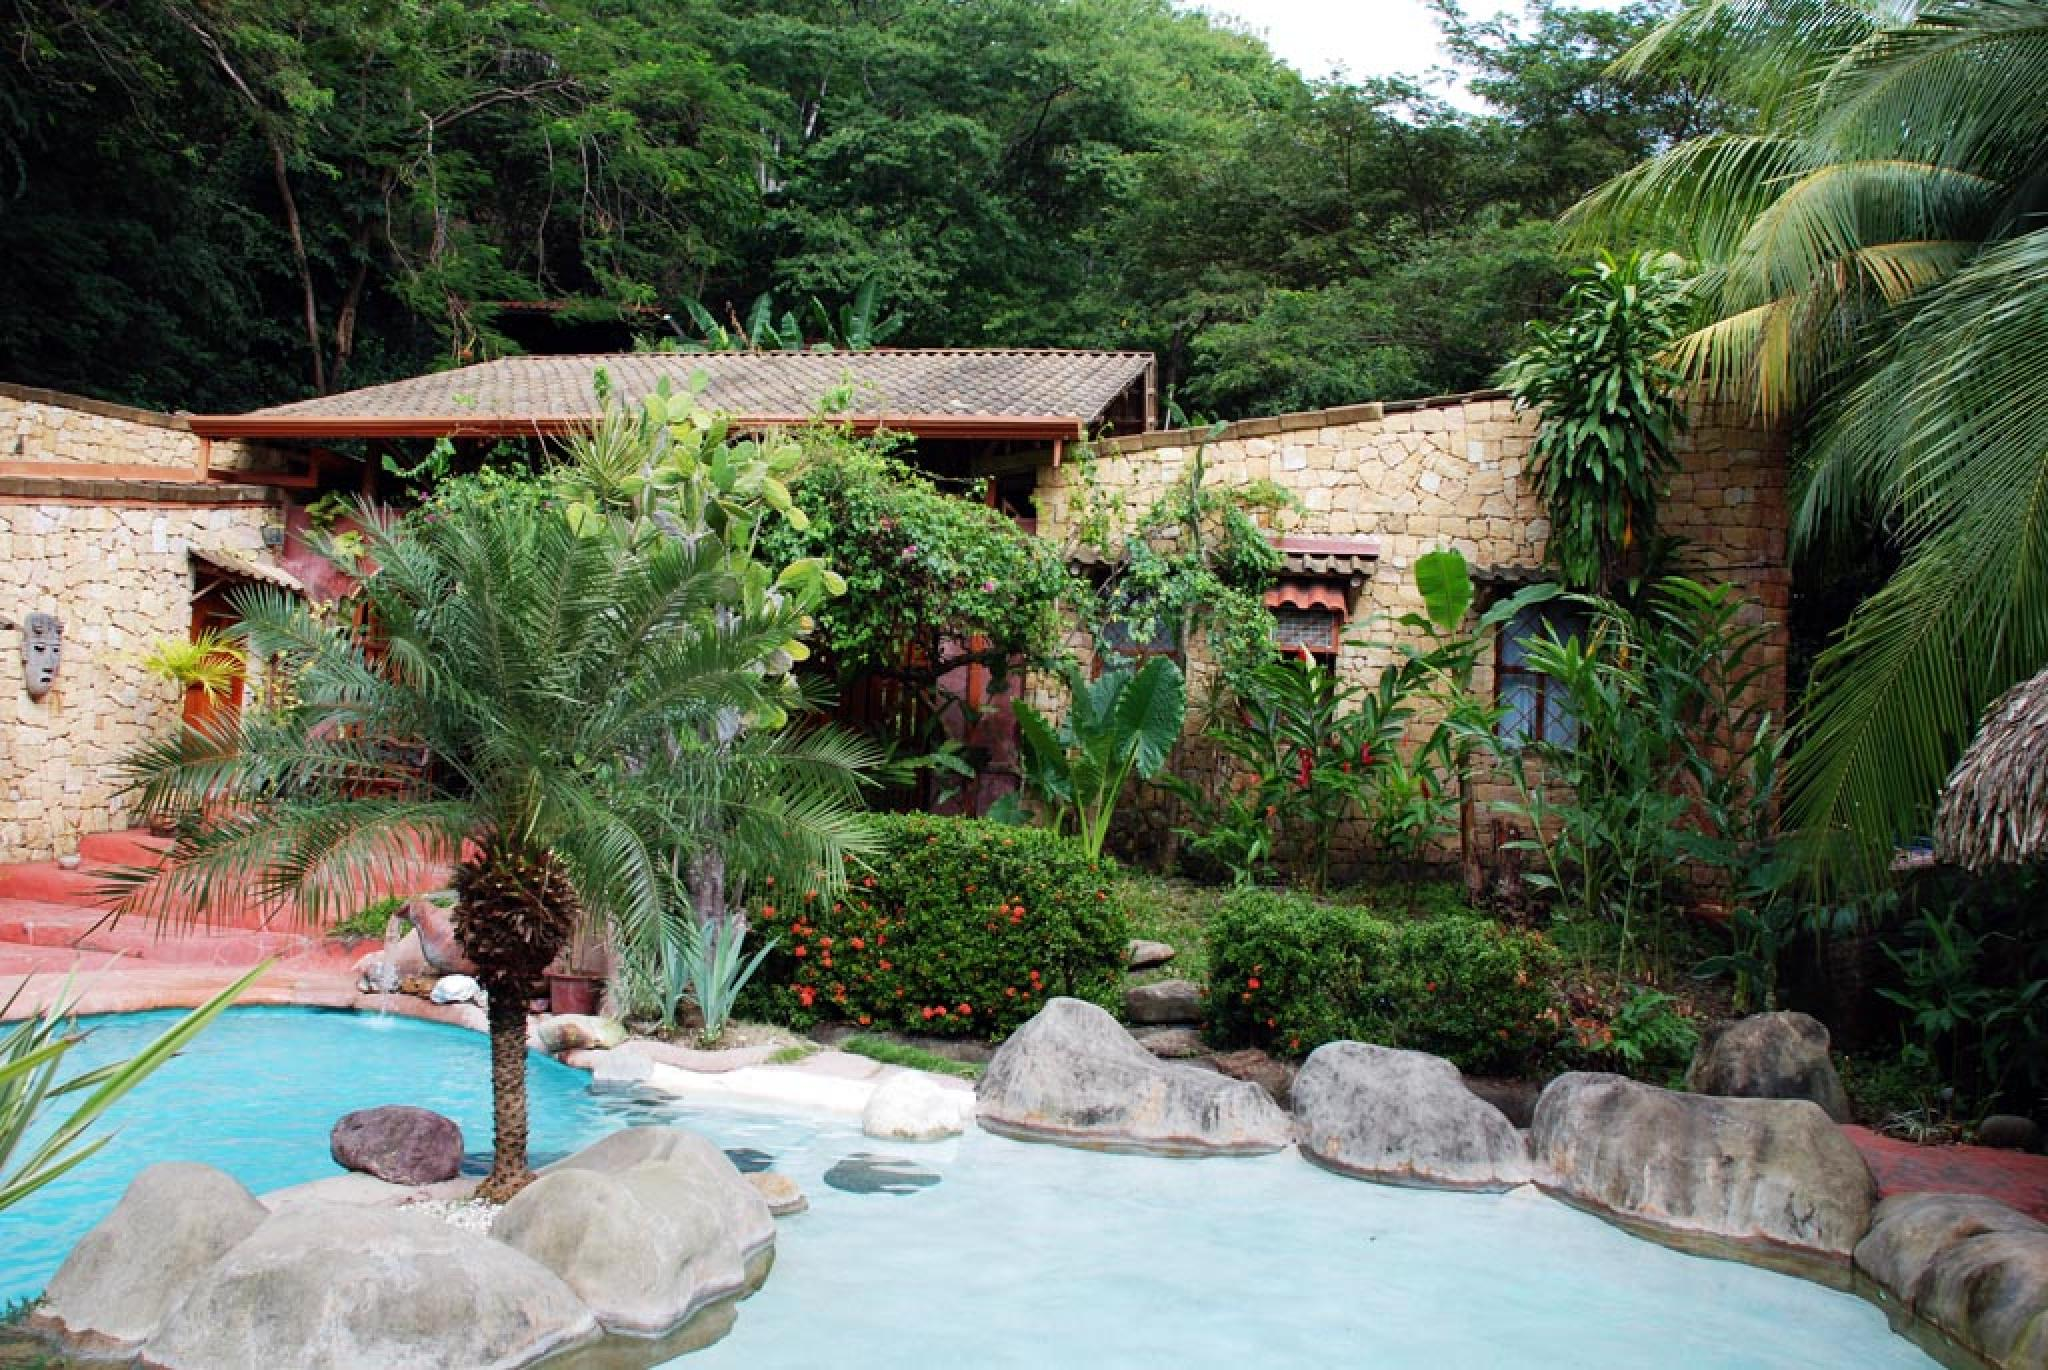 La Hacienda Tropical